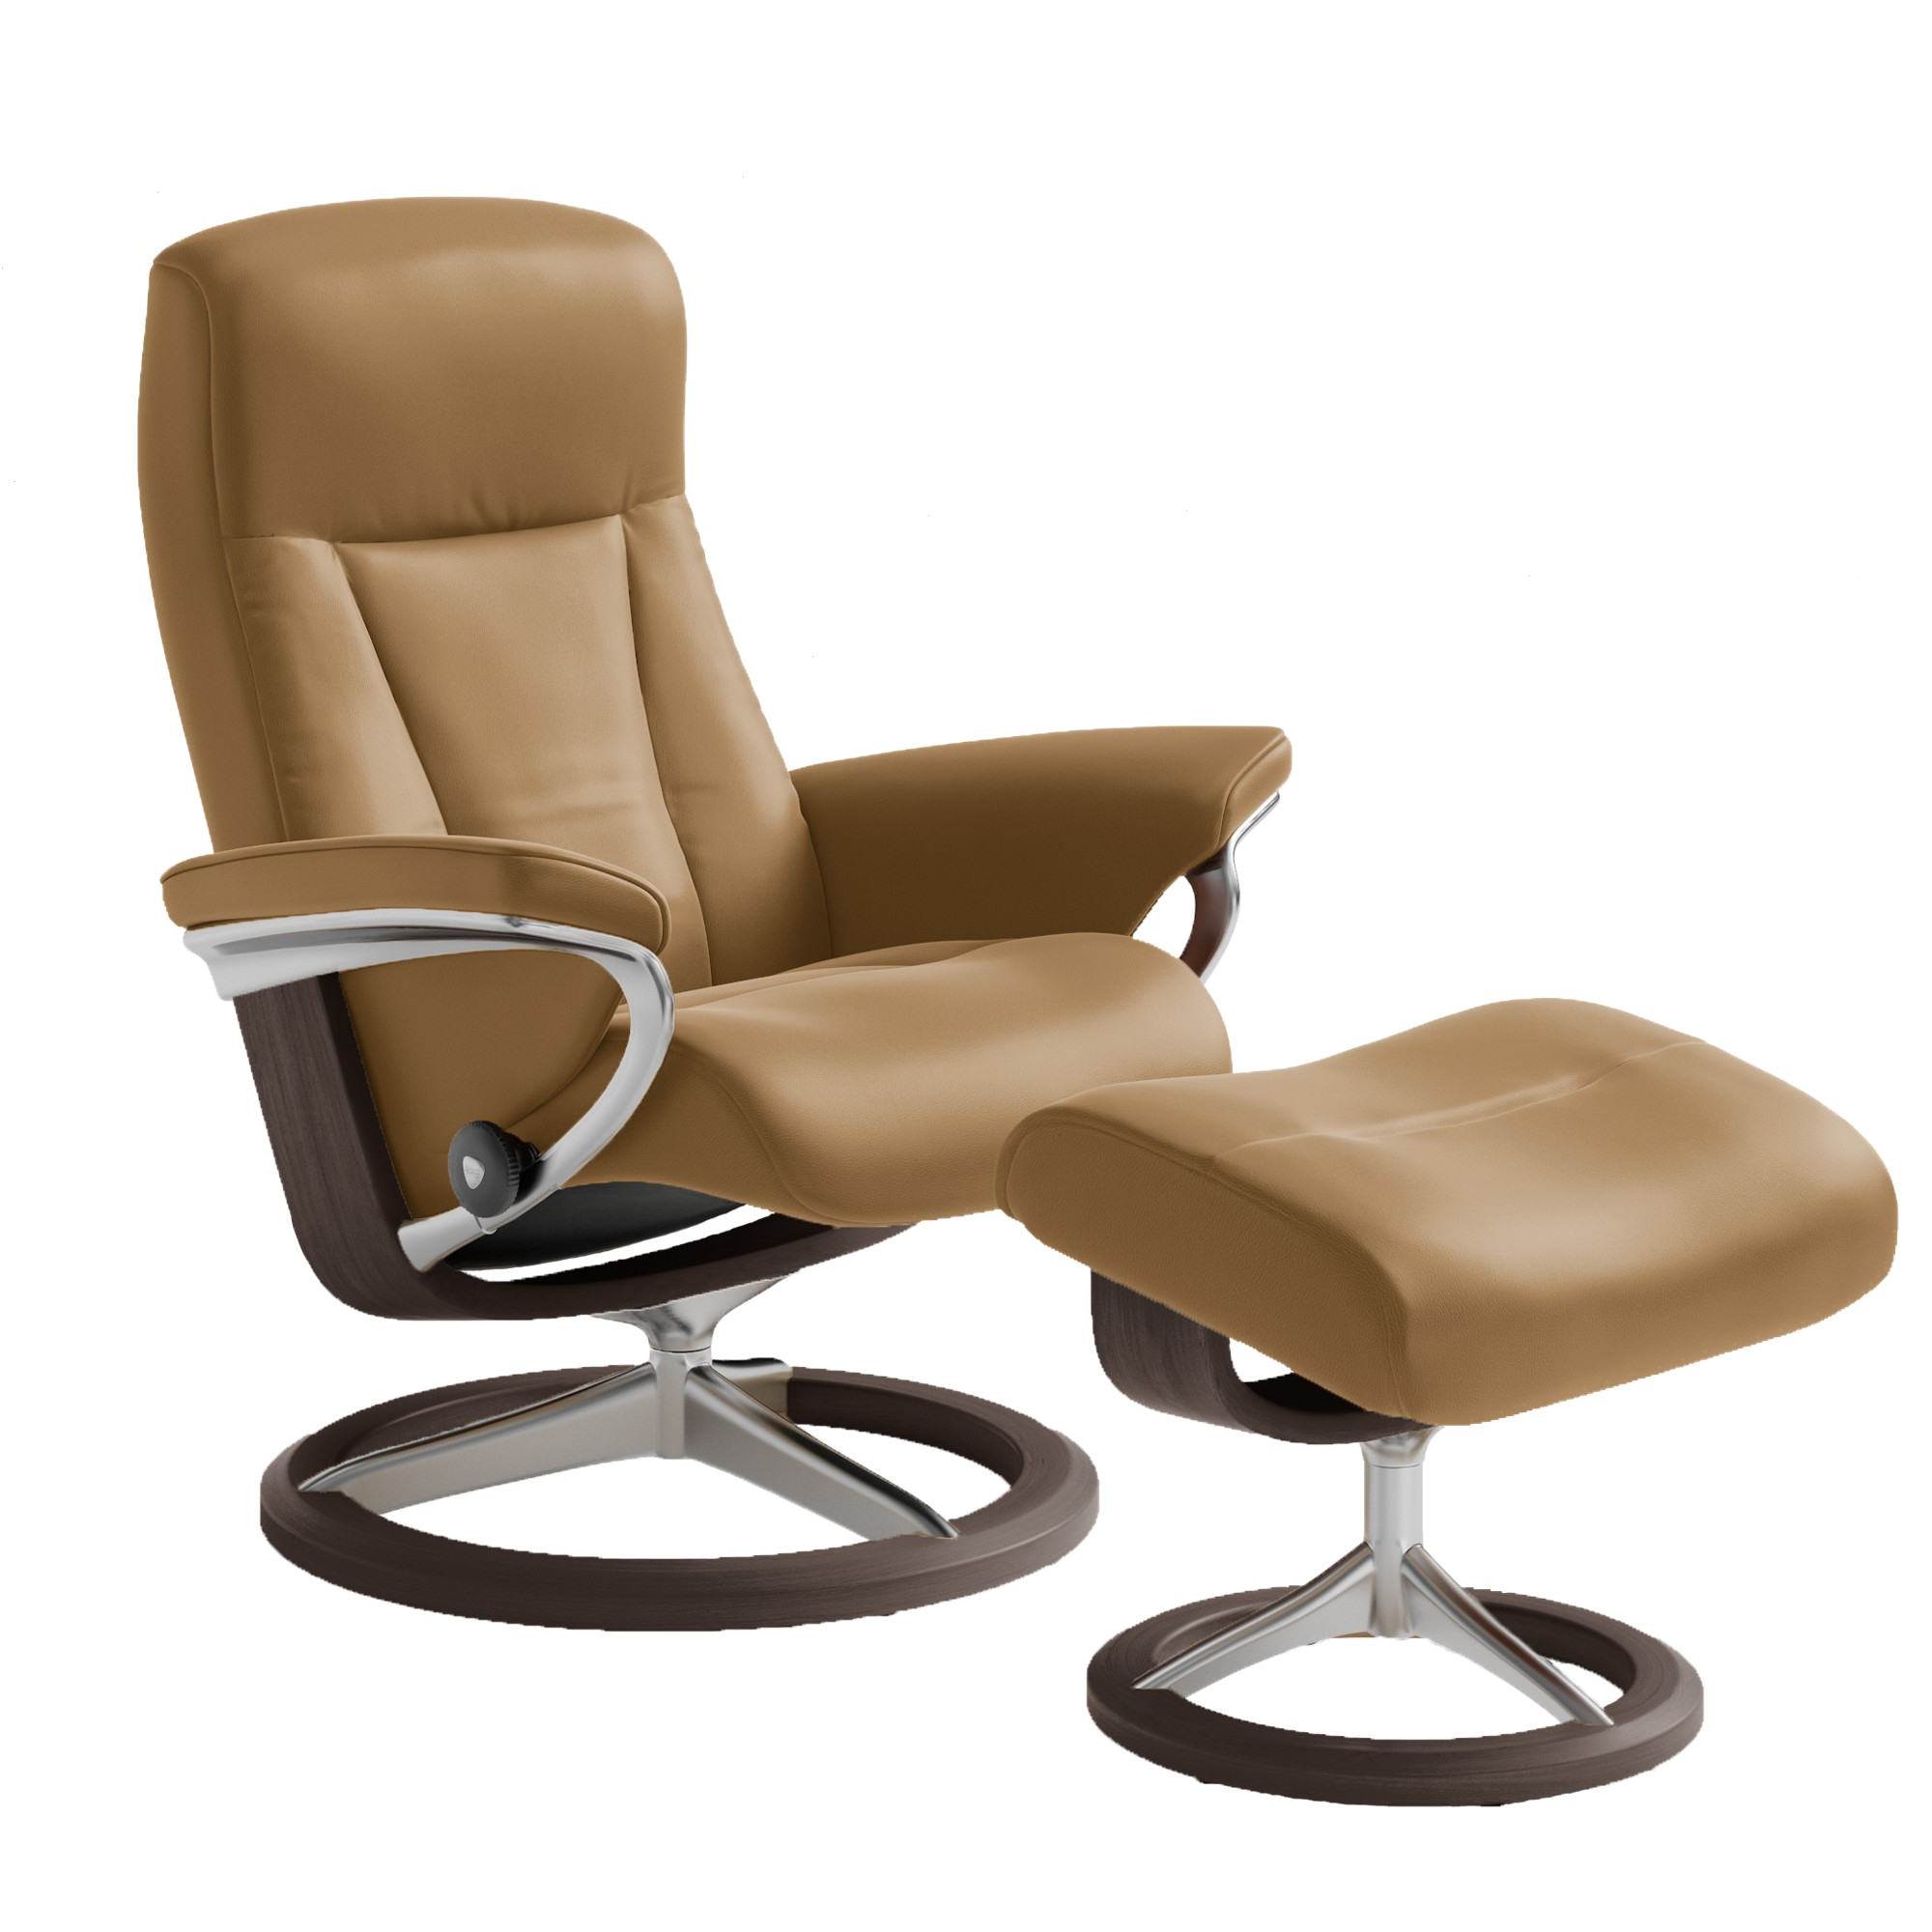 Stressless consul small chair and stool in batick leather - Picture Of Stressless President Chair Medium With Signature Base By Ekornes